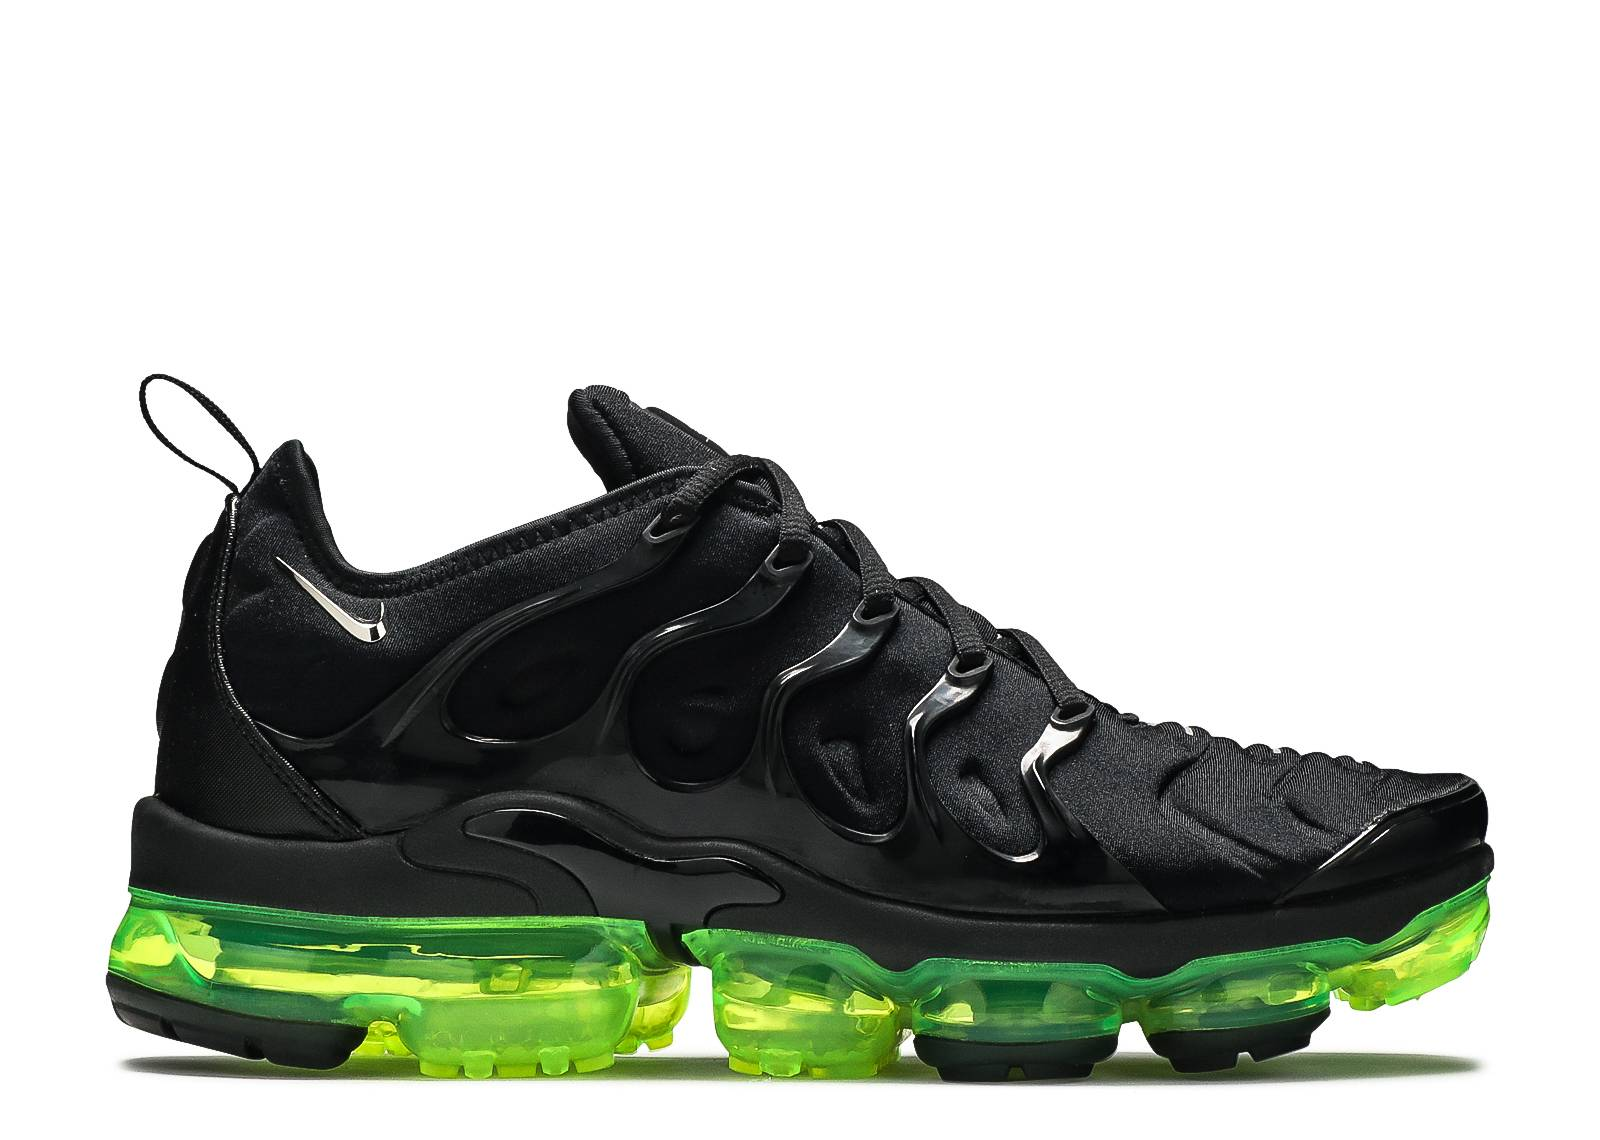 detailed look 2f308 1afec Vapormax - Nike Running - Nike | Flight Club